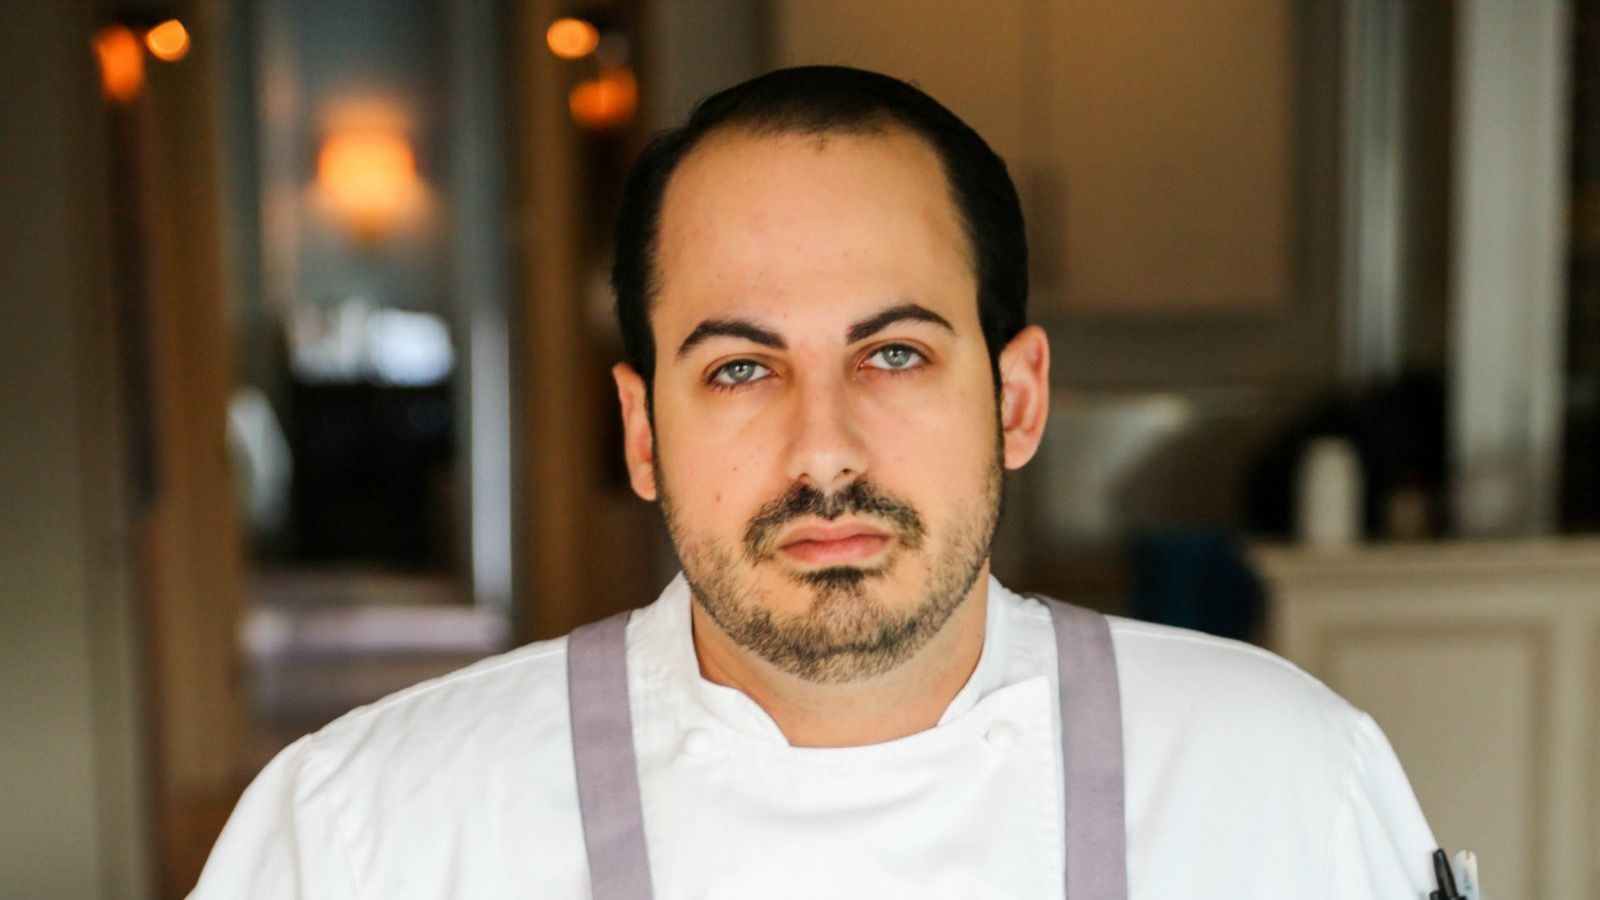 Chef Zachary Engel